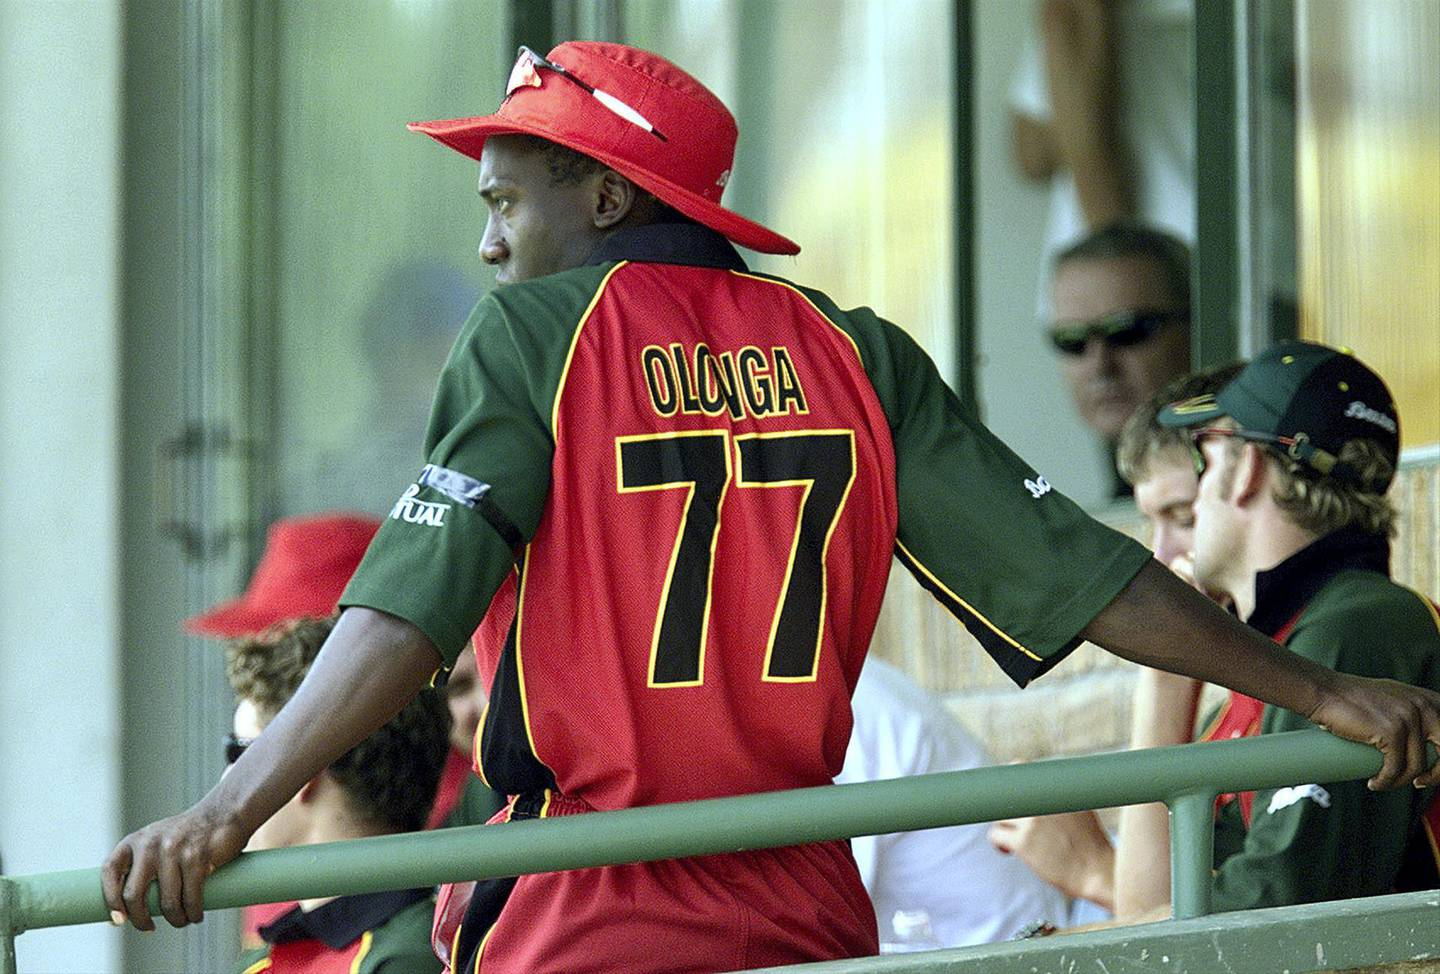 Zimbabwe bowler Henry Olonga wears a black armband in protest while in the players' enclosure during Zimbabwe's first Cricket World Cup match against Nambia at the Harare Sports Club February 10, 2003. Olonga and team mate Andy Flower, in a joint statement released just before Zimbabwe's Group A game, said they would wear black armbands during the event in an unprecedented attack on the running of the strife-torn country. REUTERS/Howard Burditt  HB/CRB - RP3DRIMSAWAA